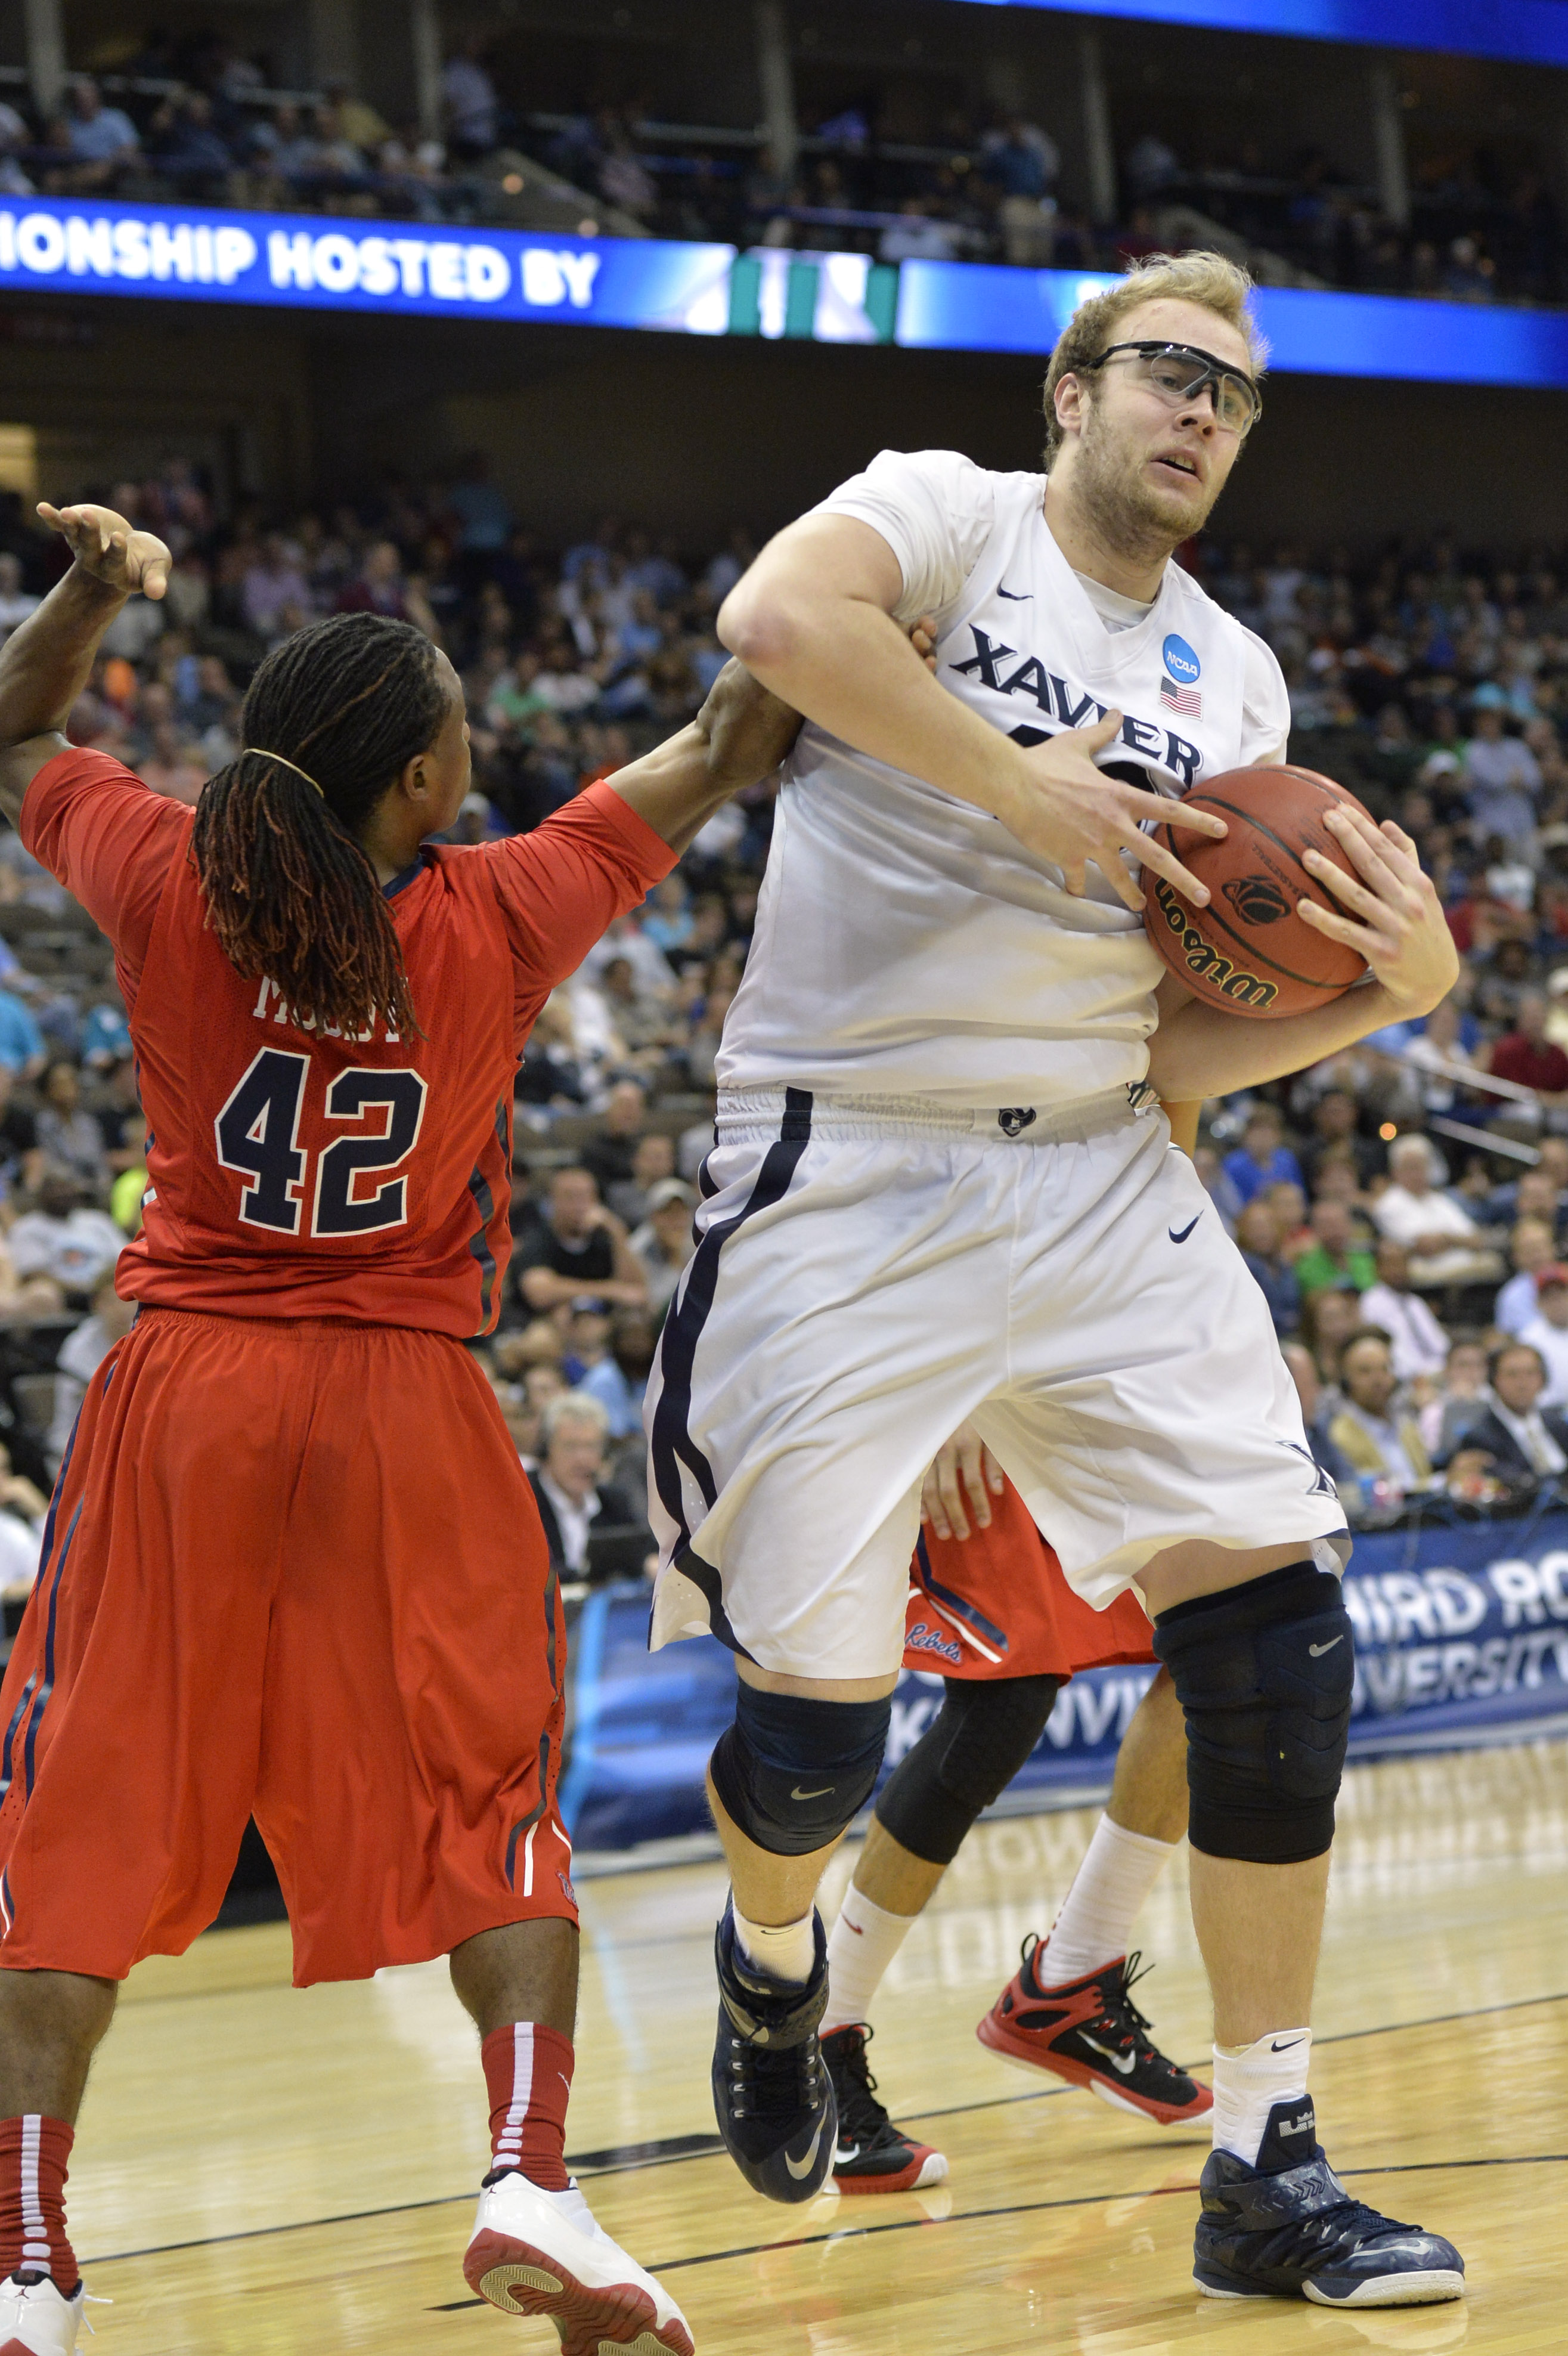 When the two stars went head to head, Stainbrook was a clear winner.